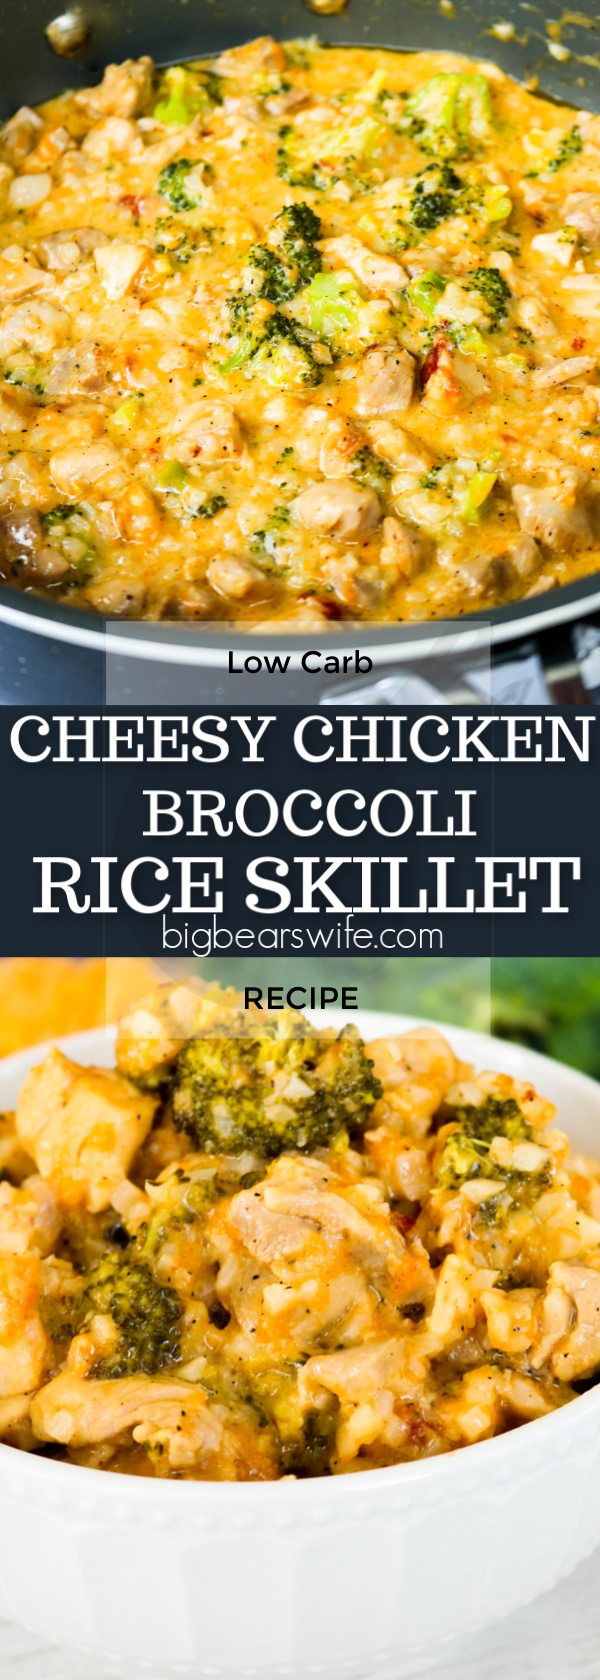 Cheesy, Broccoli, Chicken all dished up together in this 30 minute low carb dinner needs to be put on your weekly menu plan! Save this Low Carb Cheesy Chicken Broccoli Rice Skillet recipe and make it for your family this week!